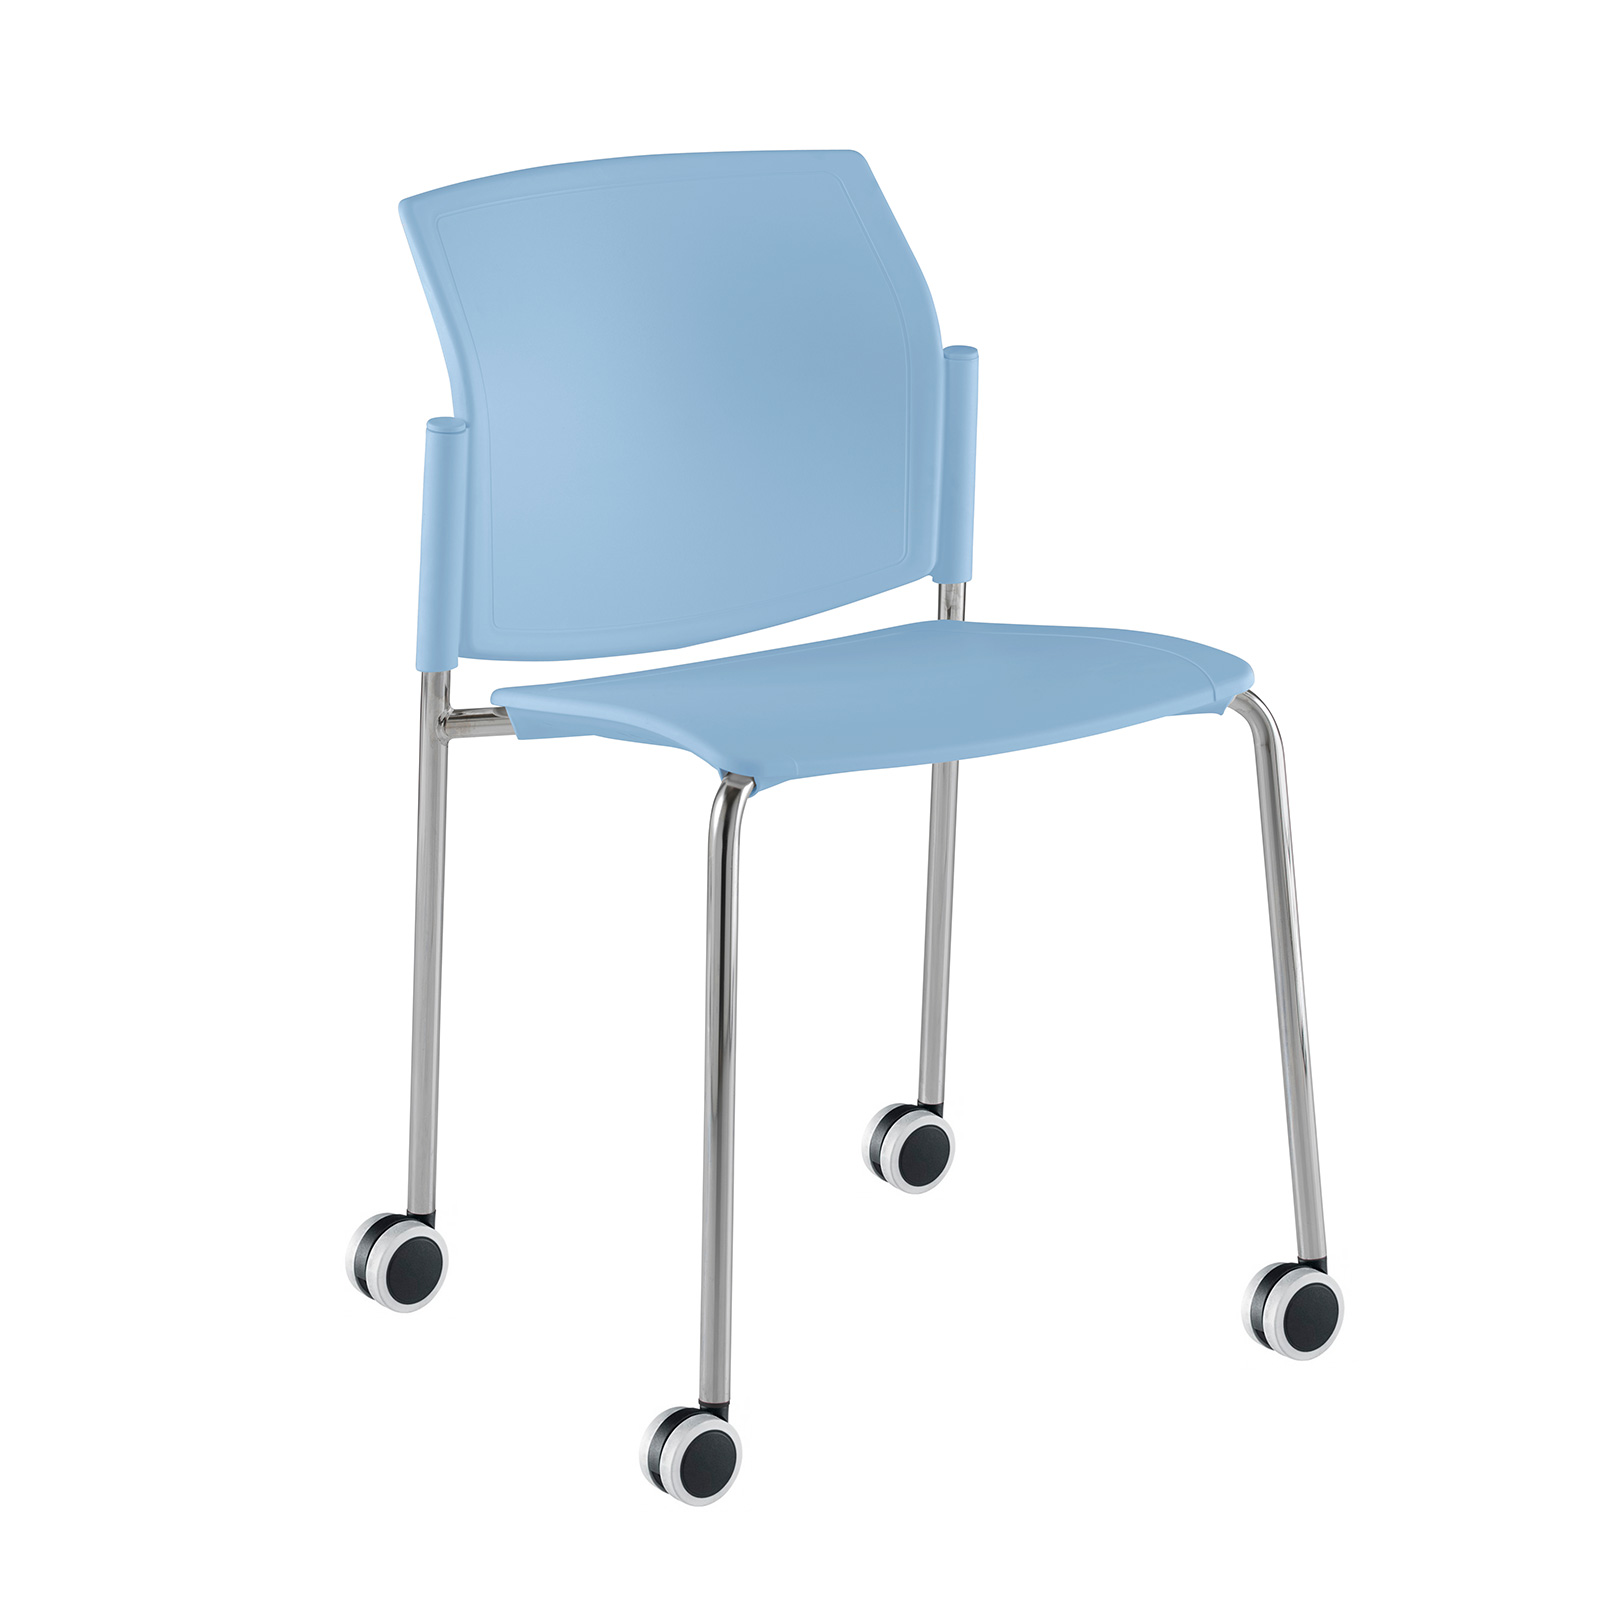 Santana 4 leg mobile chair with plastic seat and back